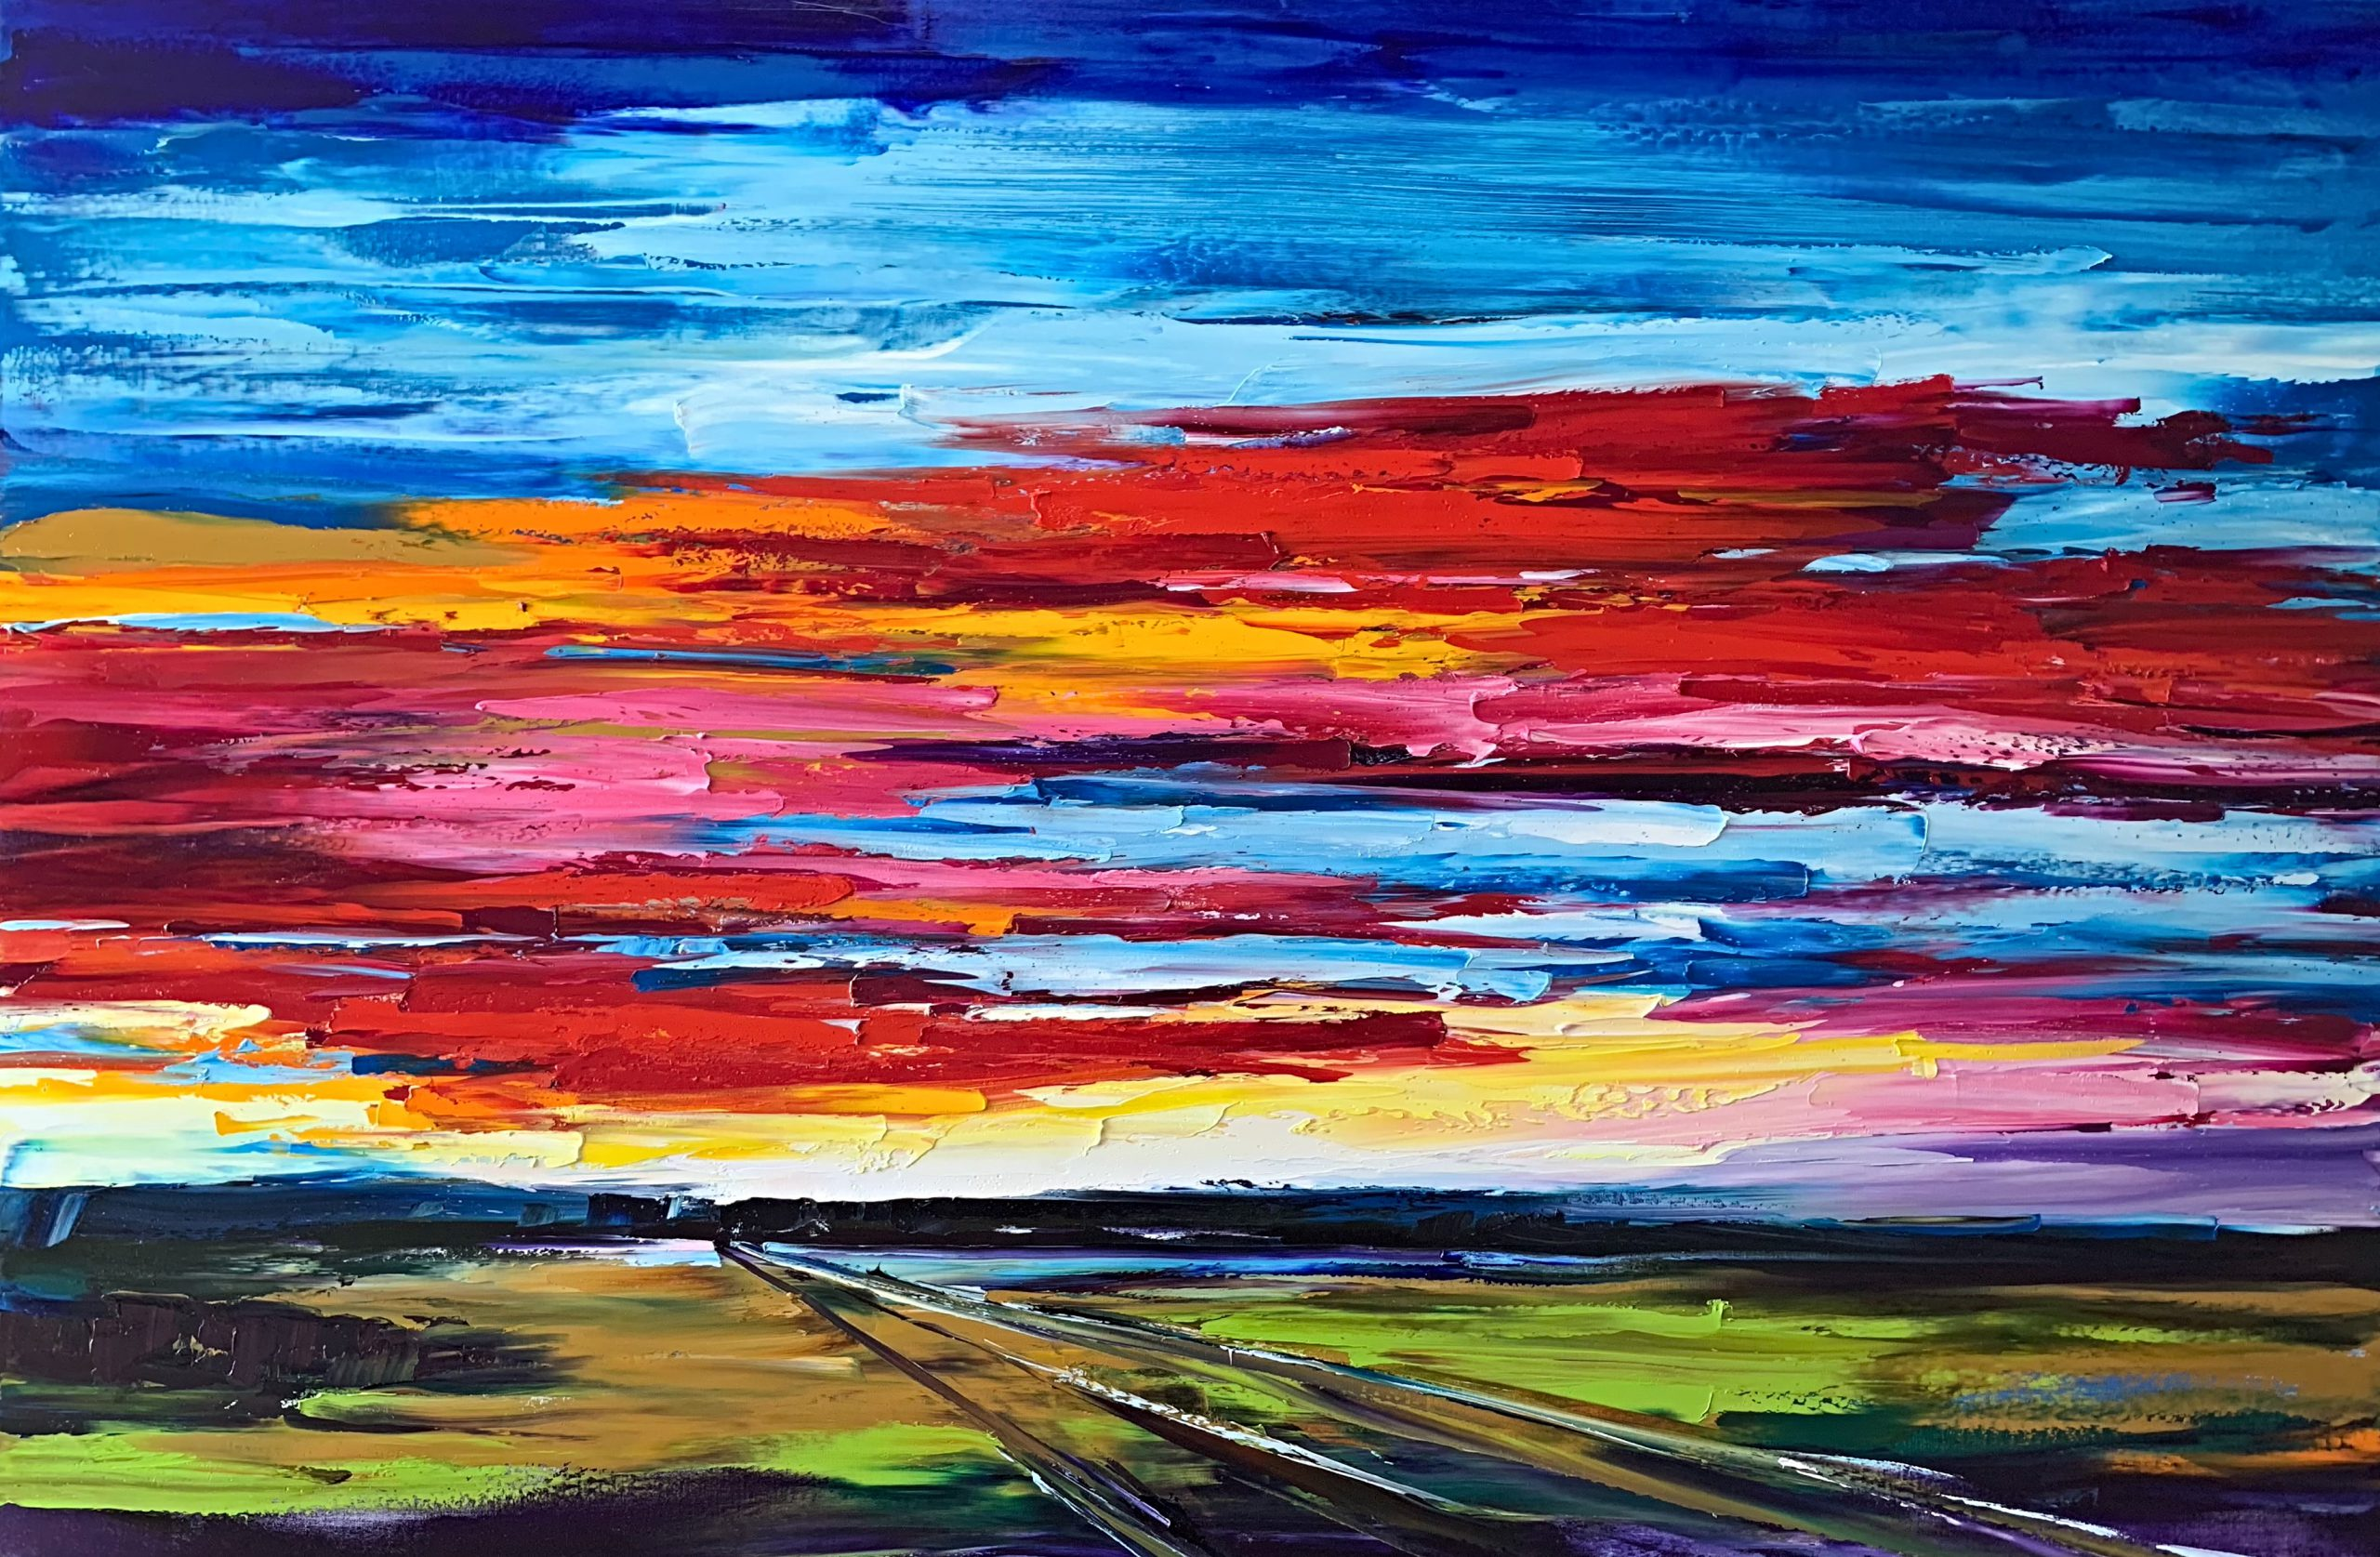 On the Road to Find Out, oil landscape painting by Kimberly Kiel   Effusion Art Gallery + Cast Glass Studio, Invermere BC